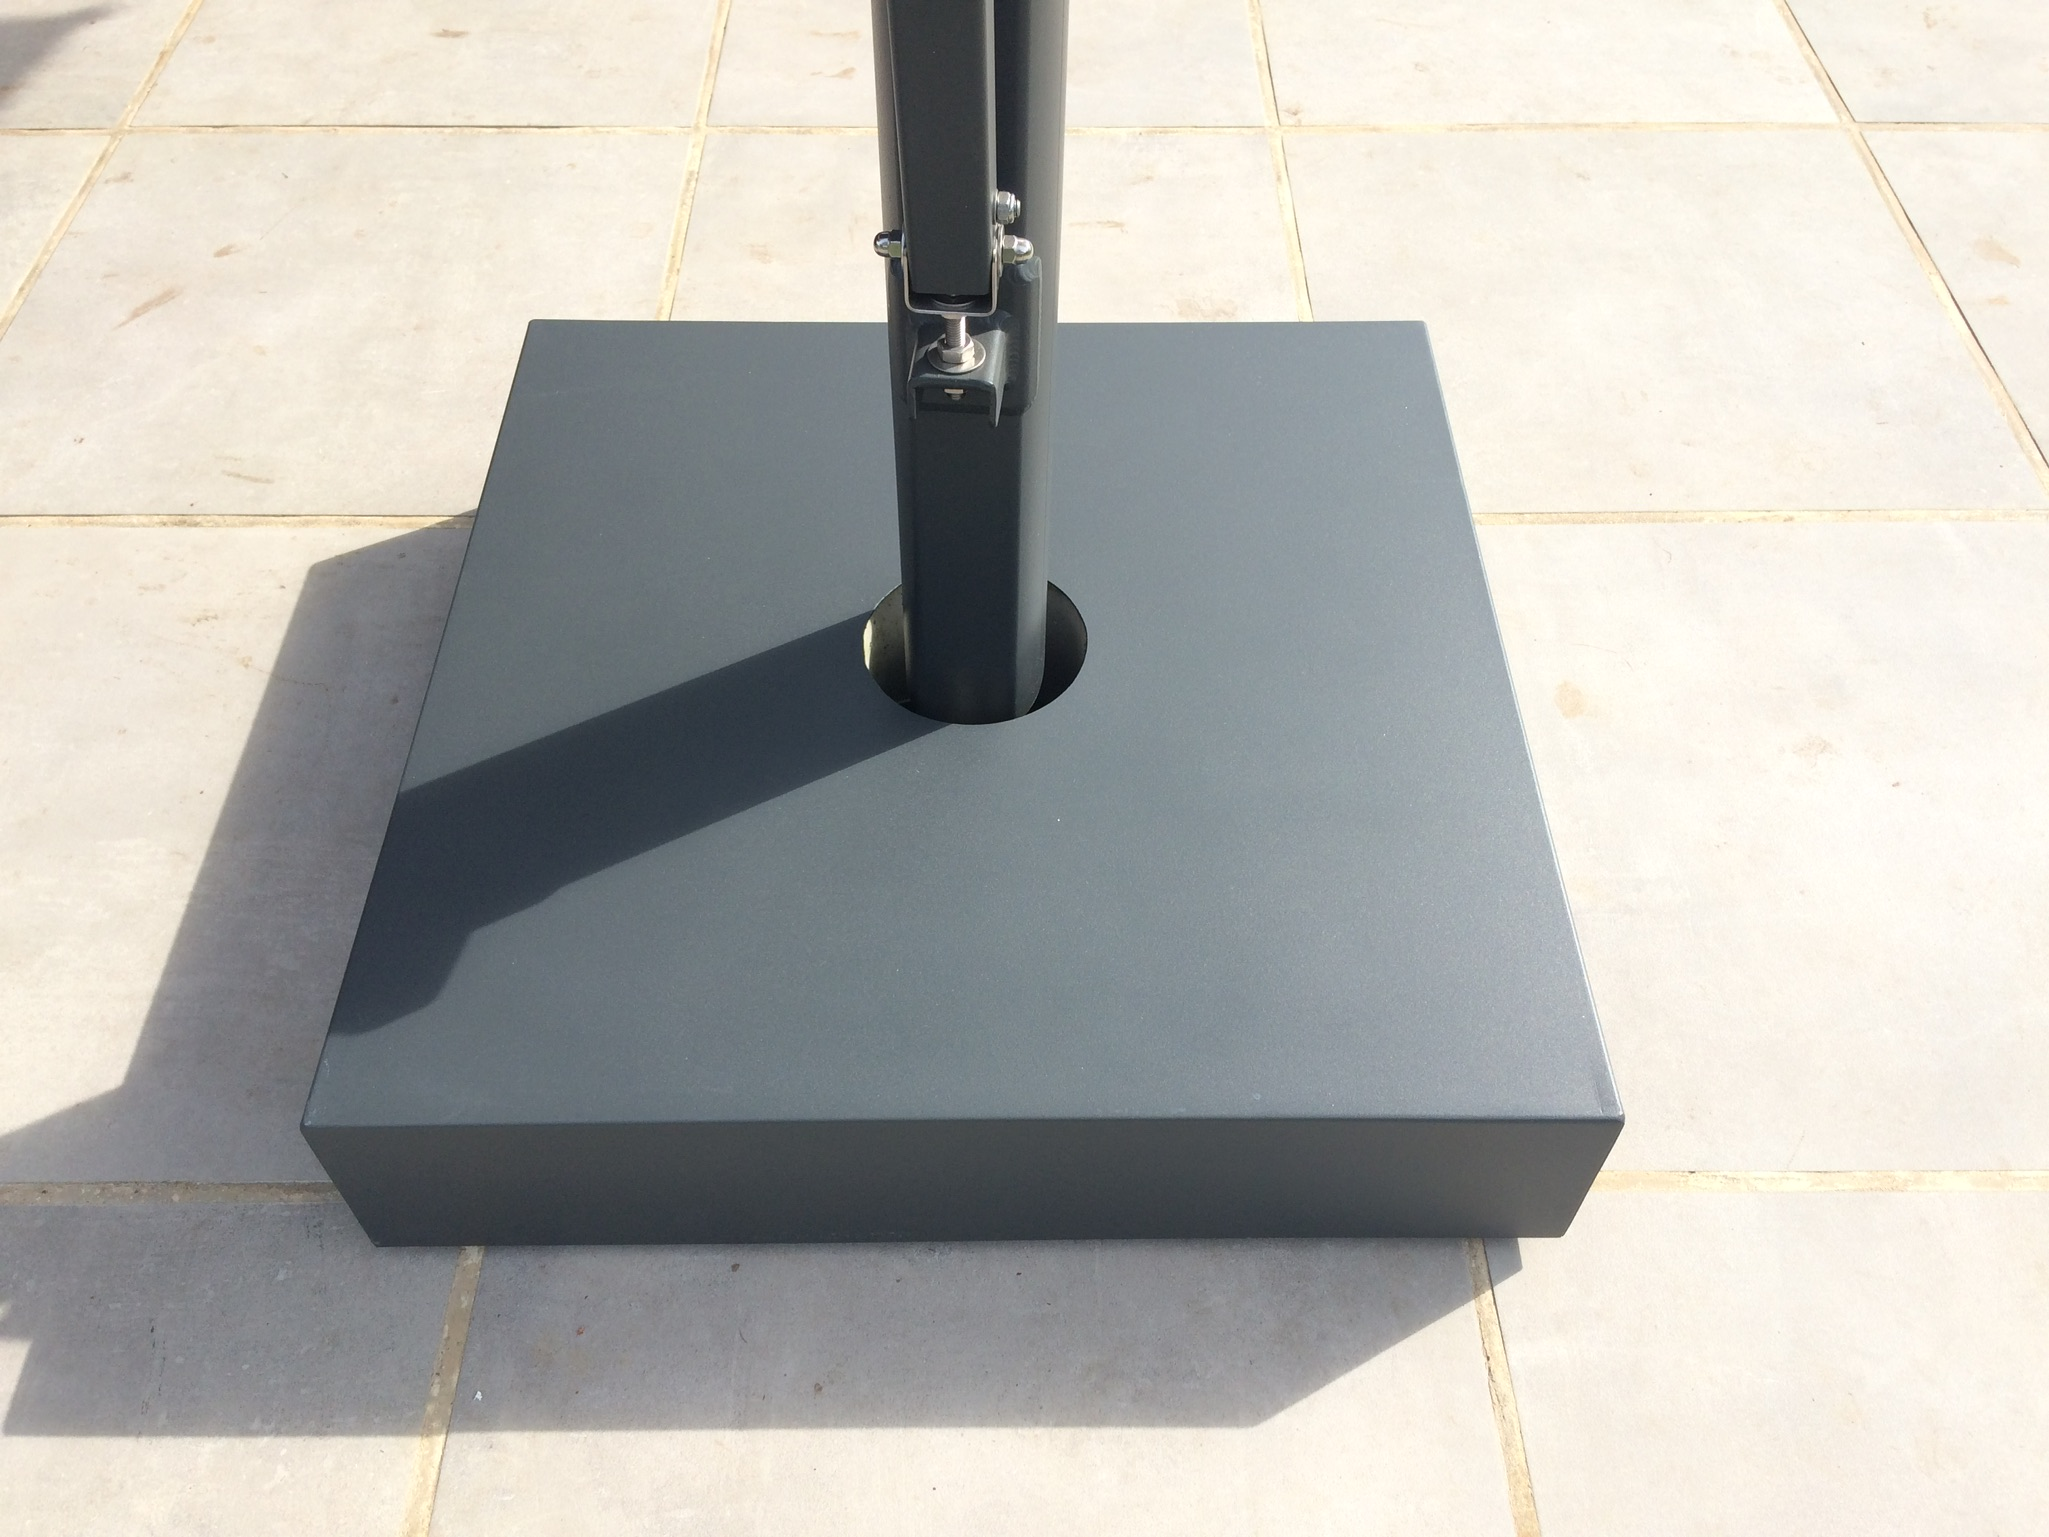 Poggesi Parasol Surface Base and Cover